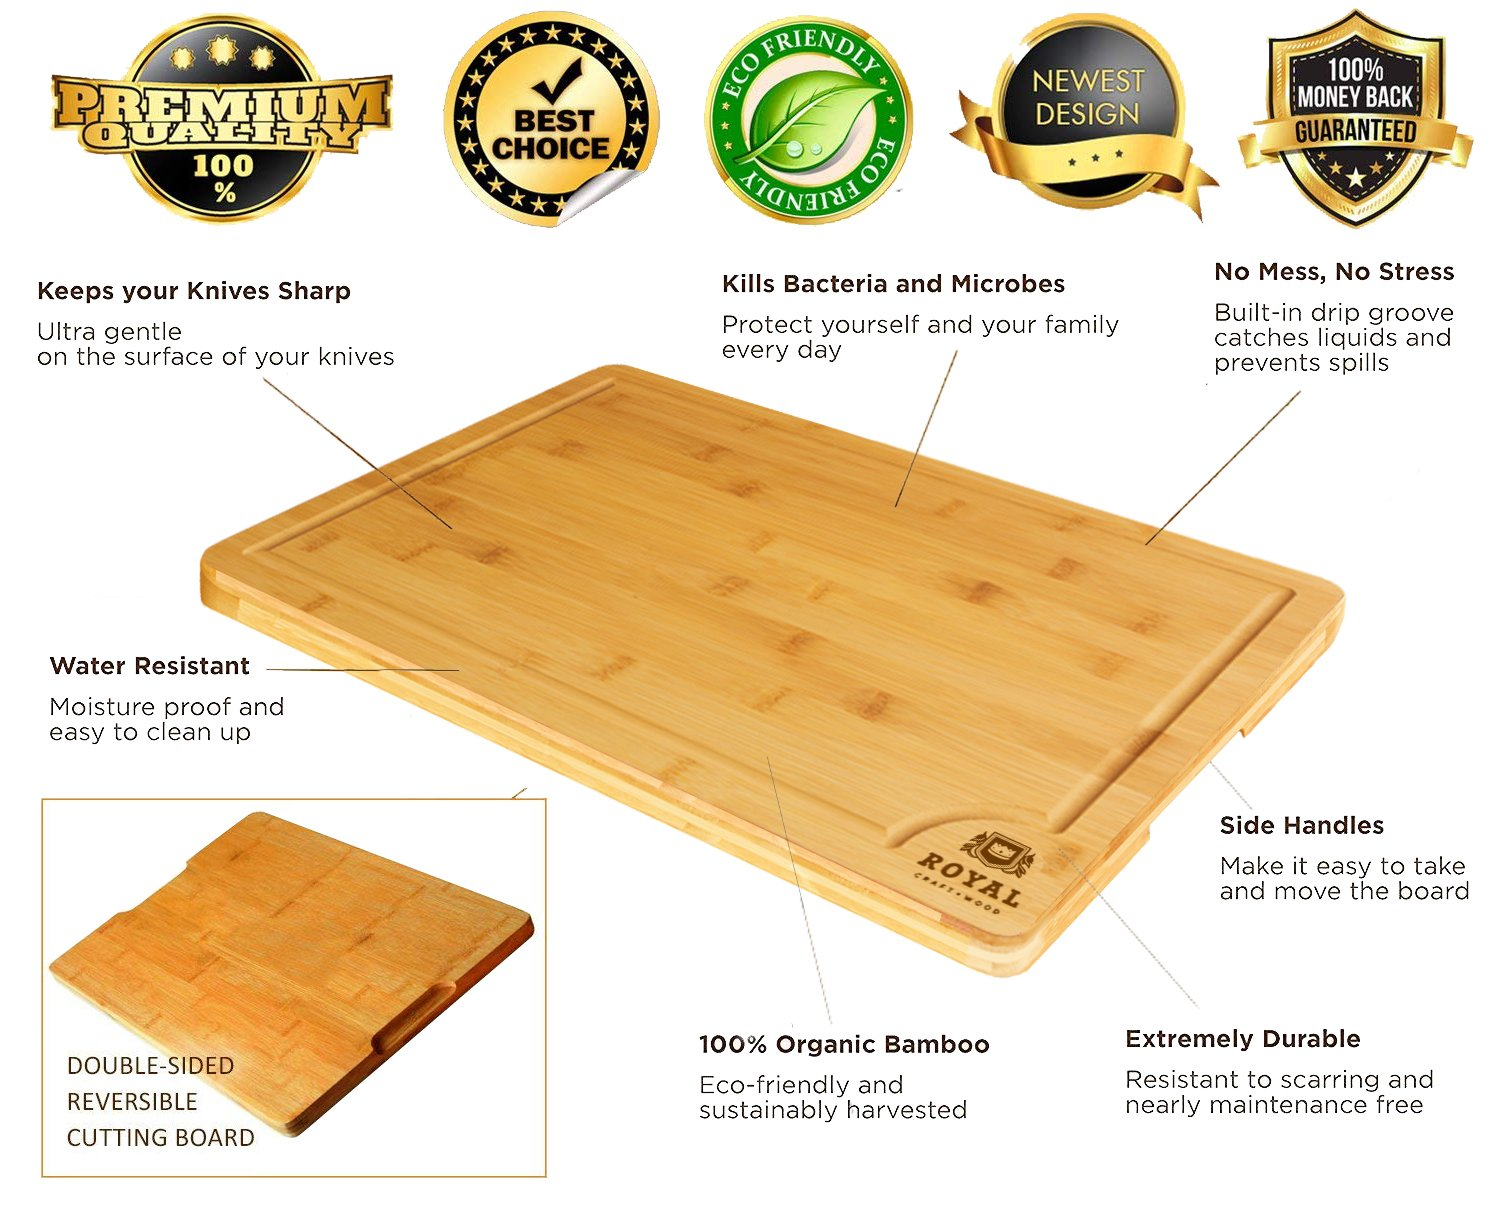 Bamboo Cutting Board w/Juice Groove & Handles - Butcher Block for Chopping Meat & Vegetables - Kitchen Cutting Boards, 10x15 by Royal Craft Wood (Image #3)